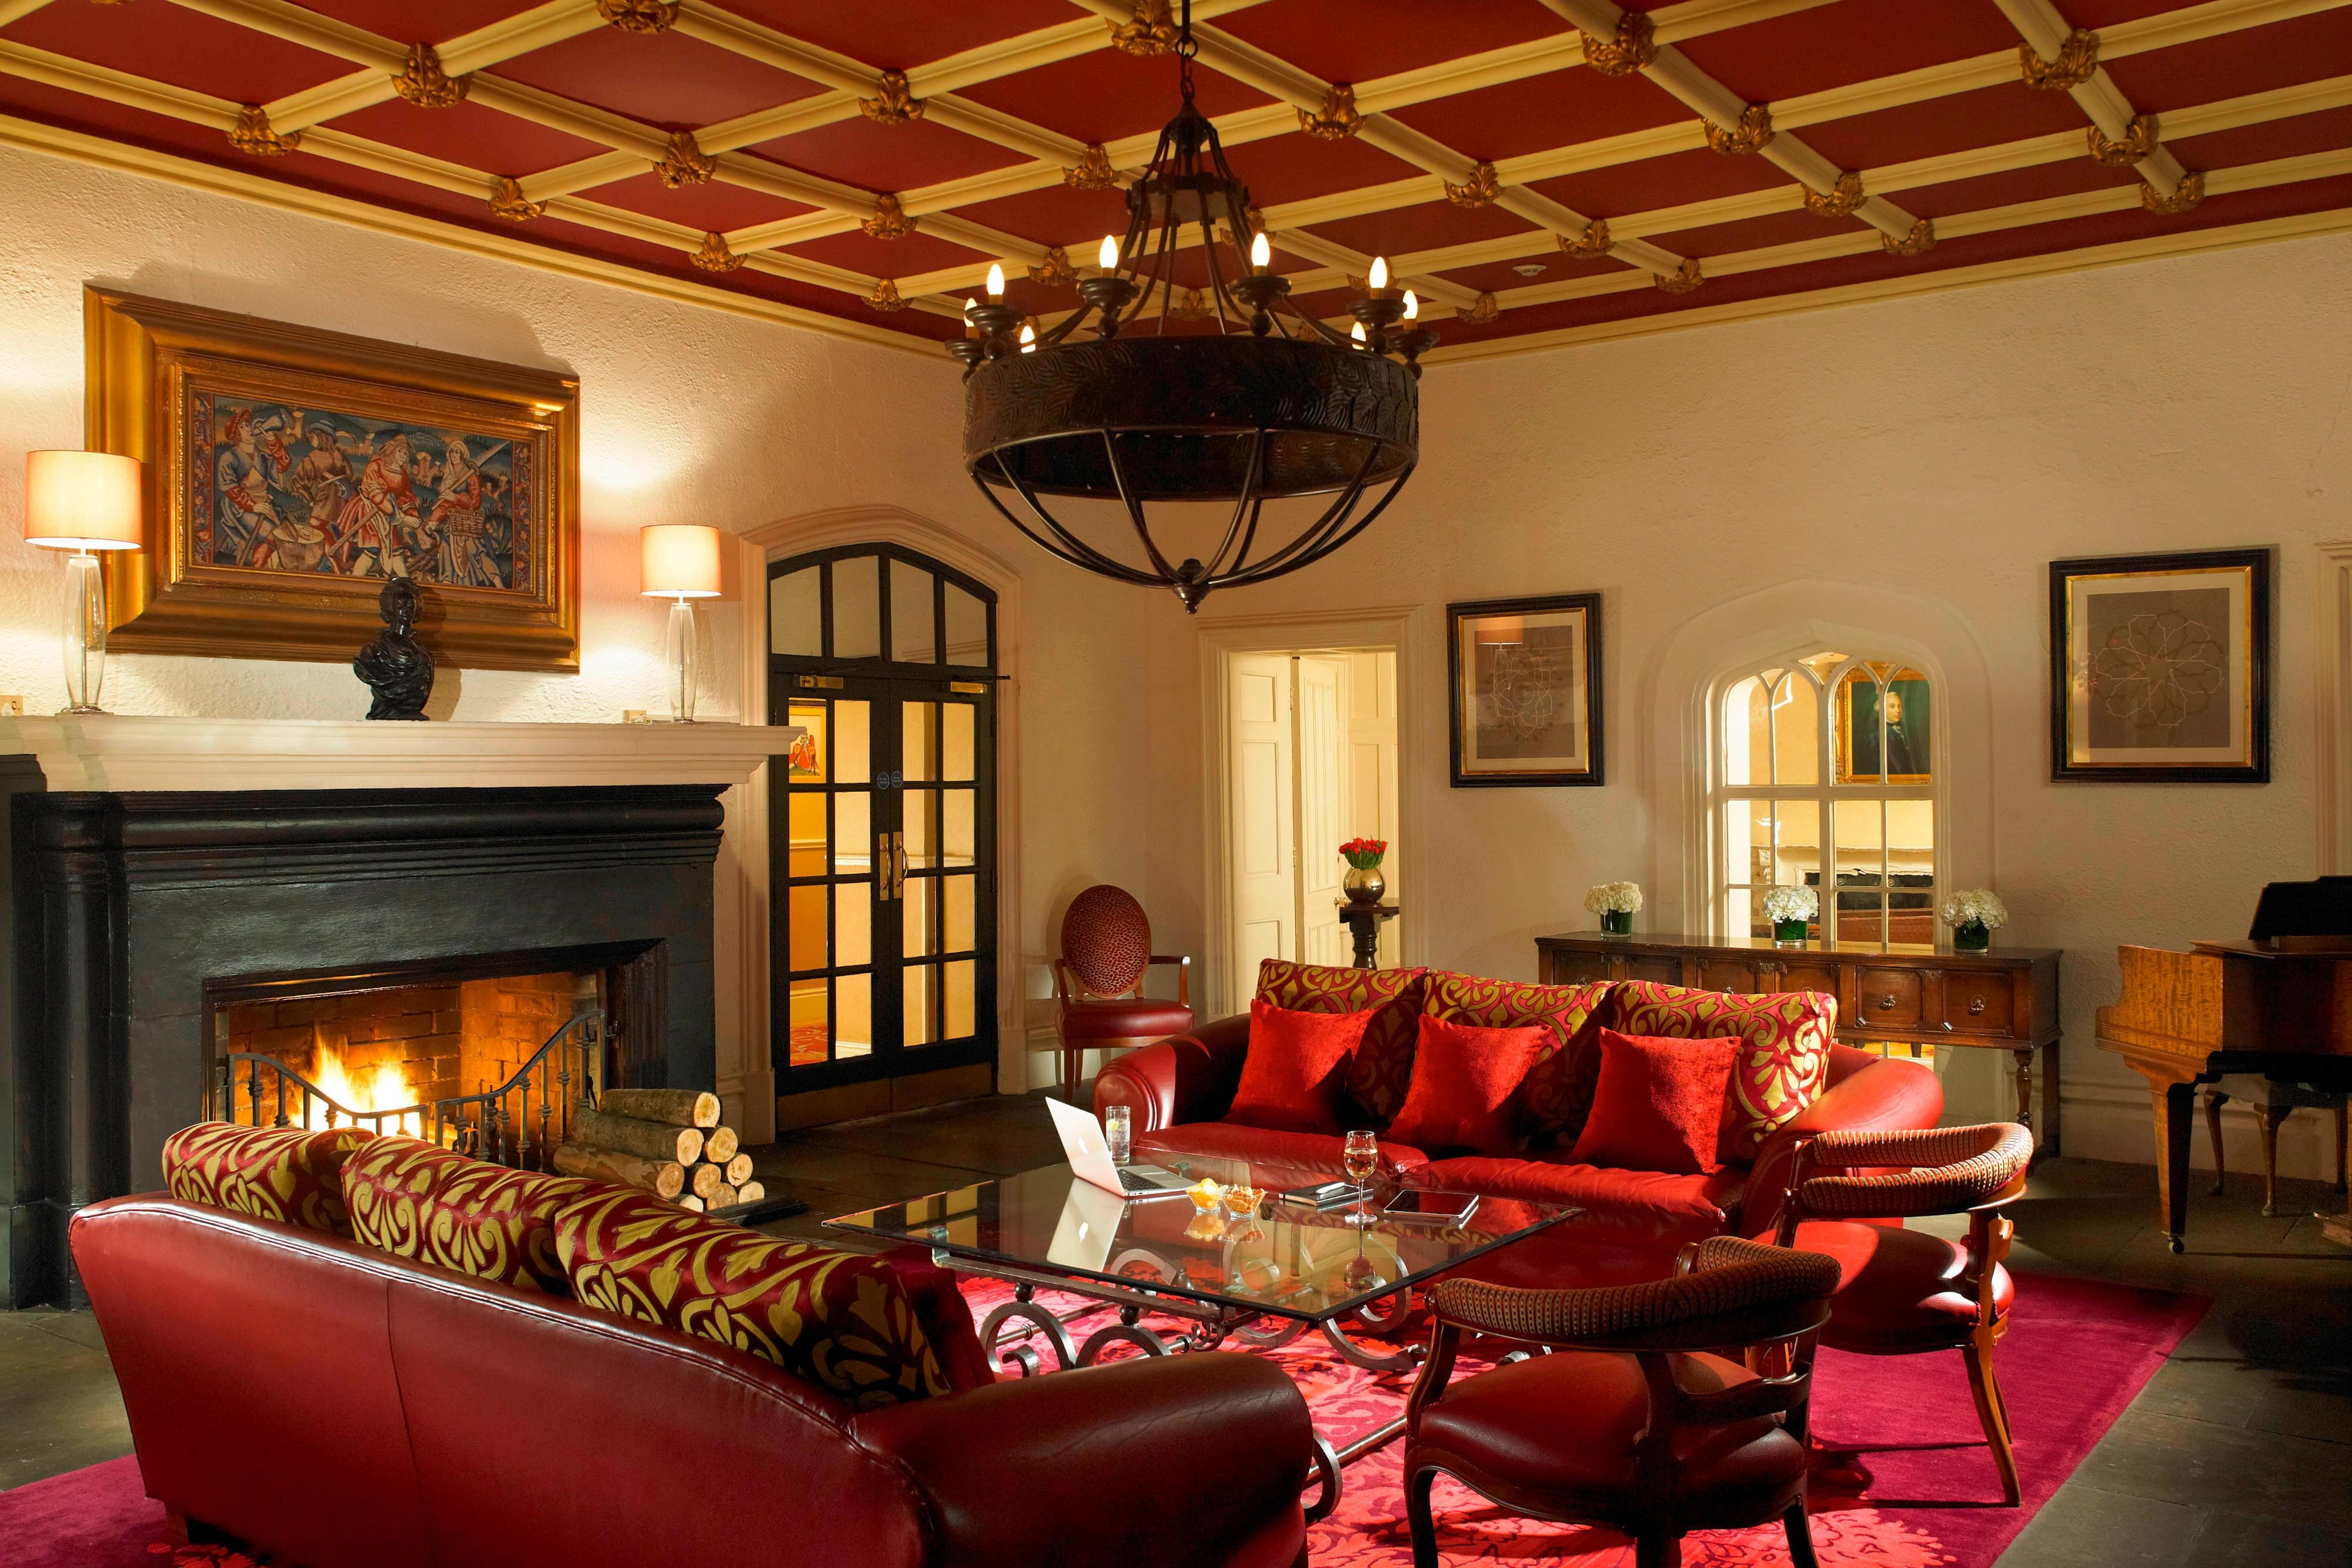 Sunken Lounge with roaring fire